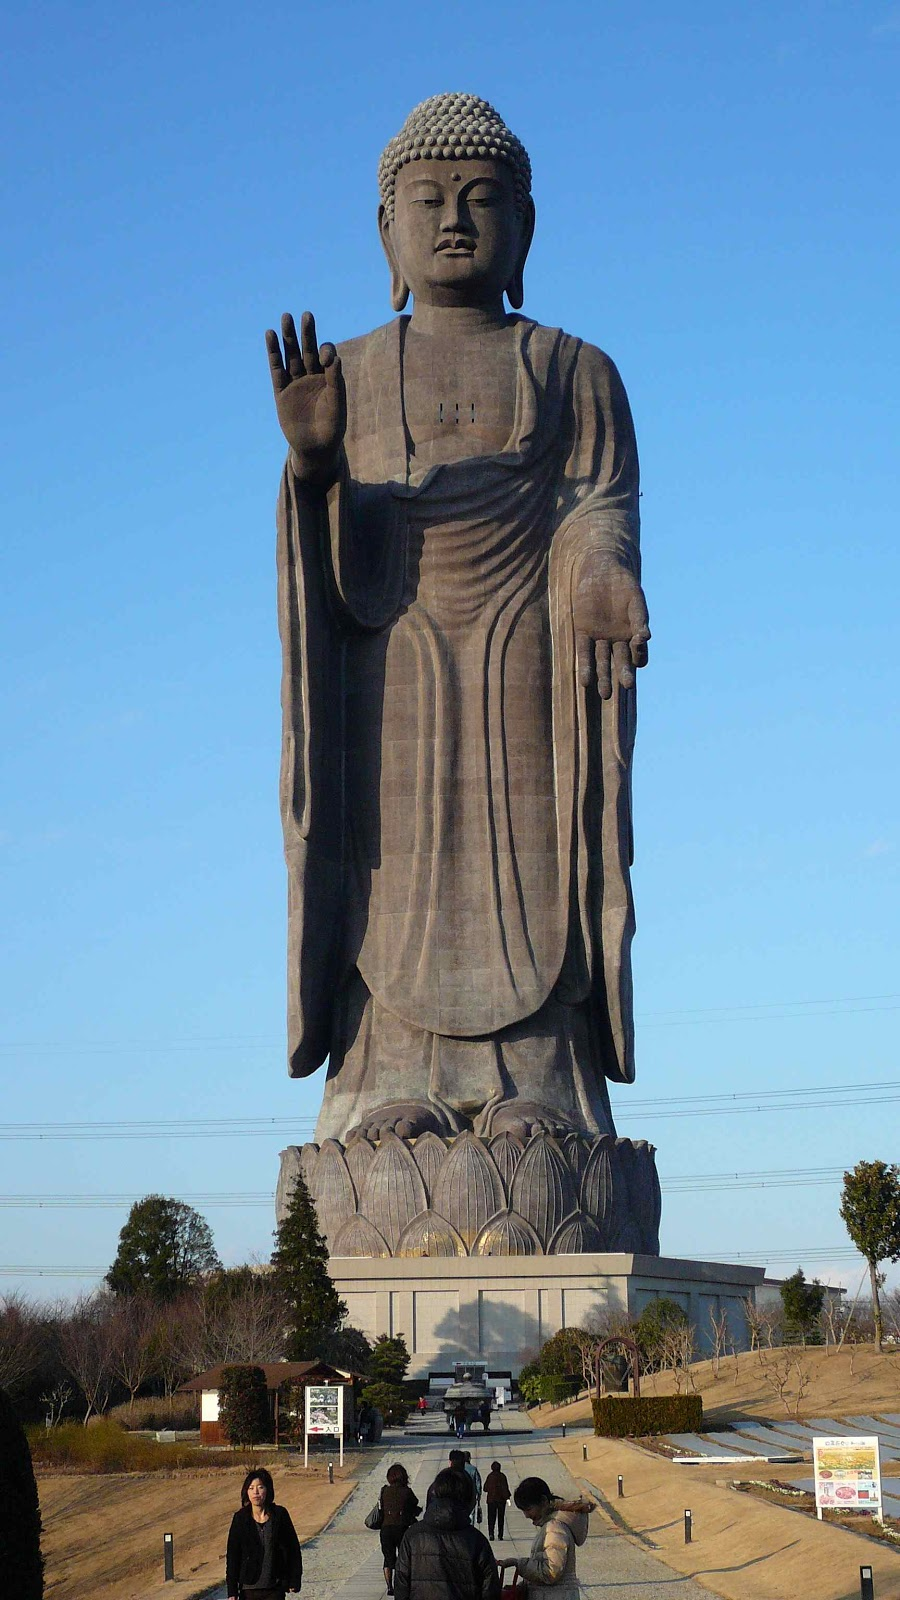 Ushiku Daibutsu Vs Statue Of Liberty Res Obscura: The World...